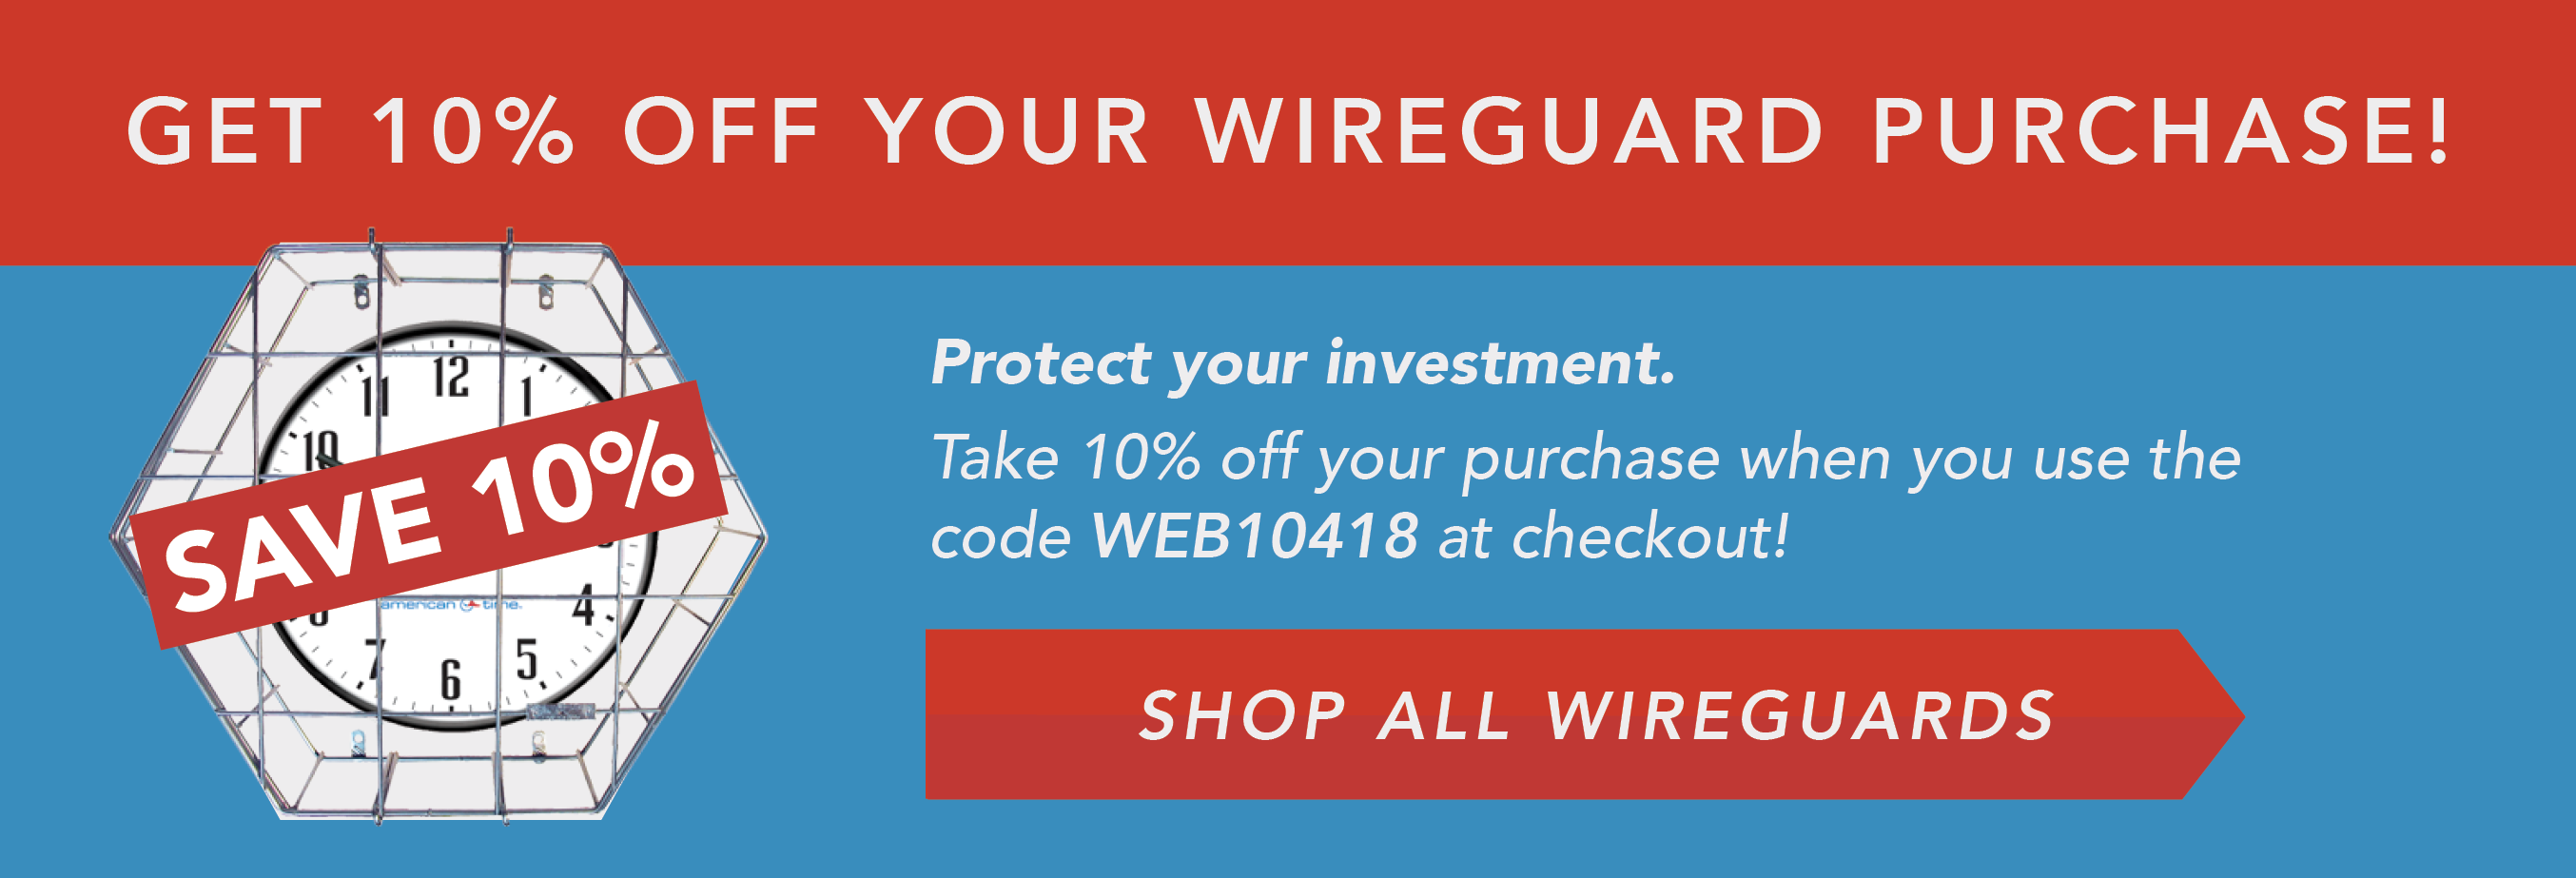 get 10% off wire guard purchase